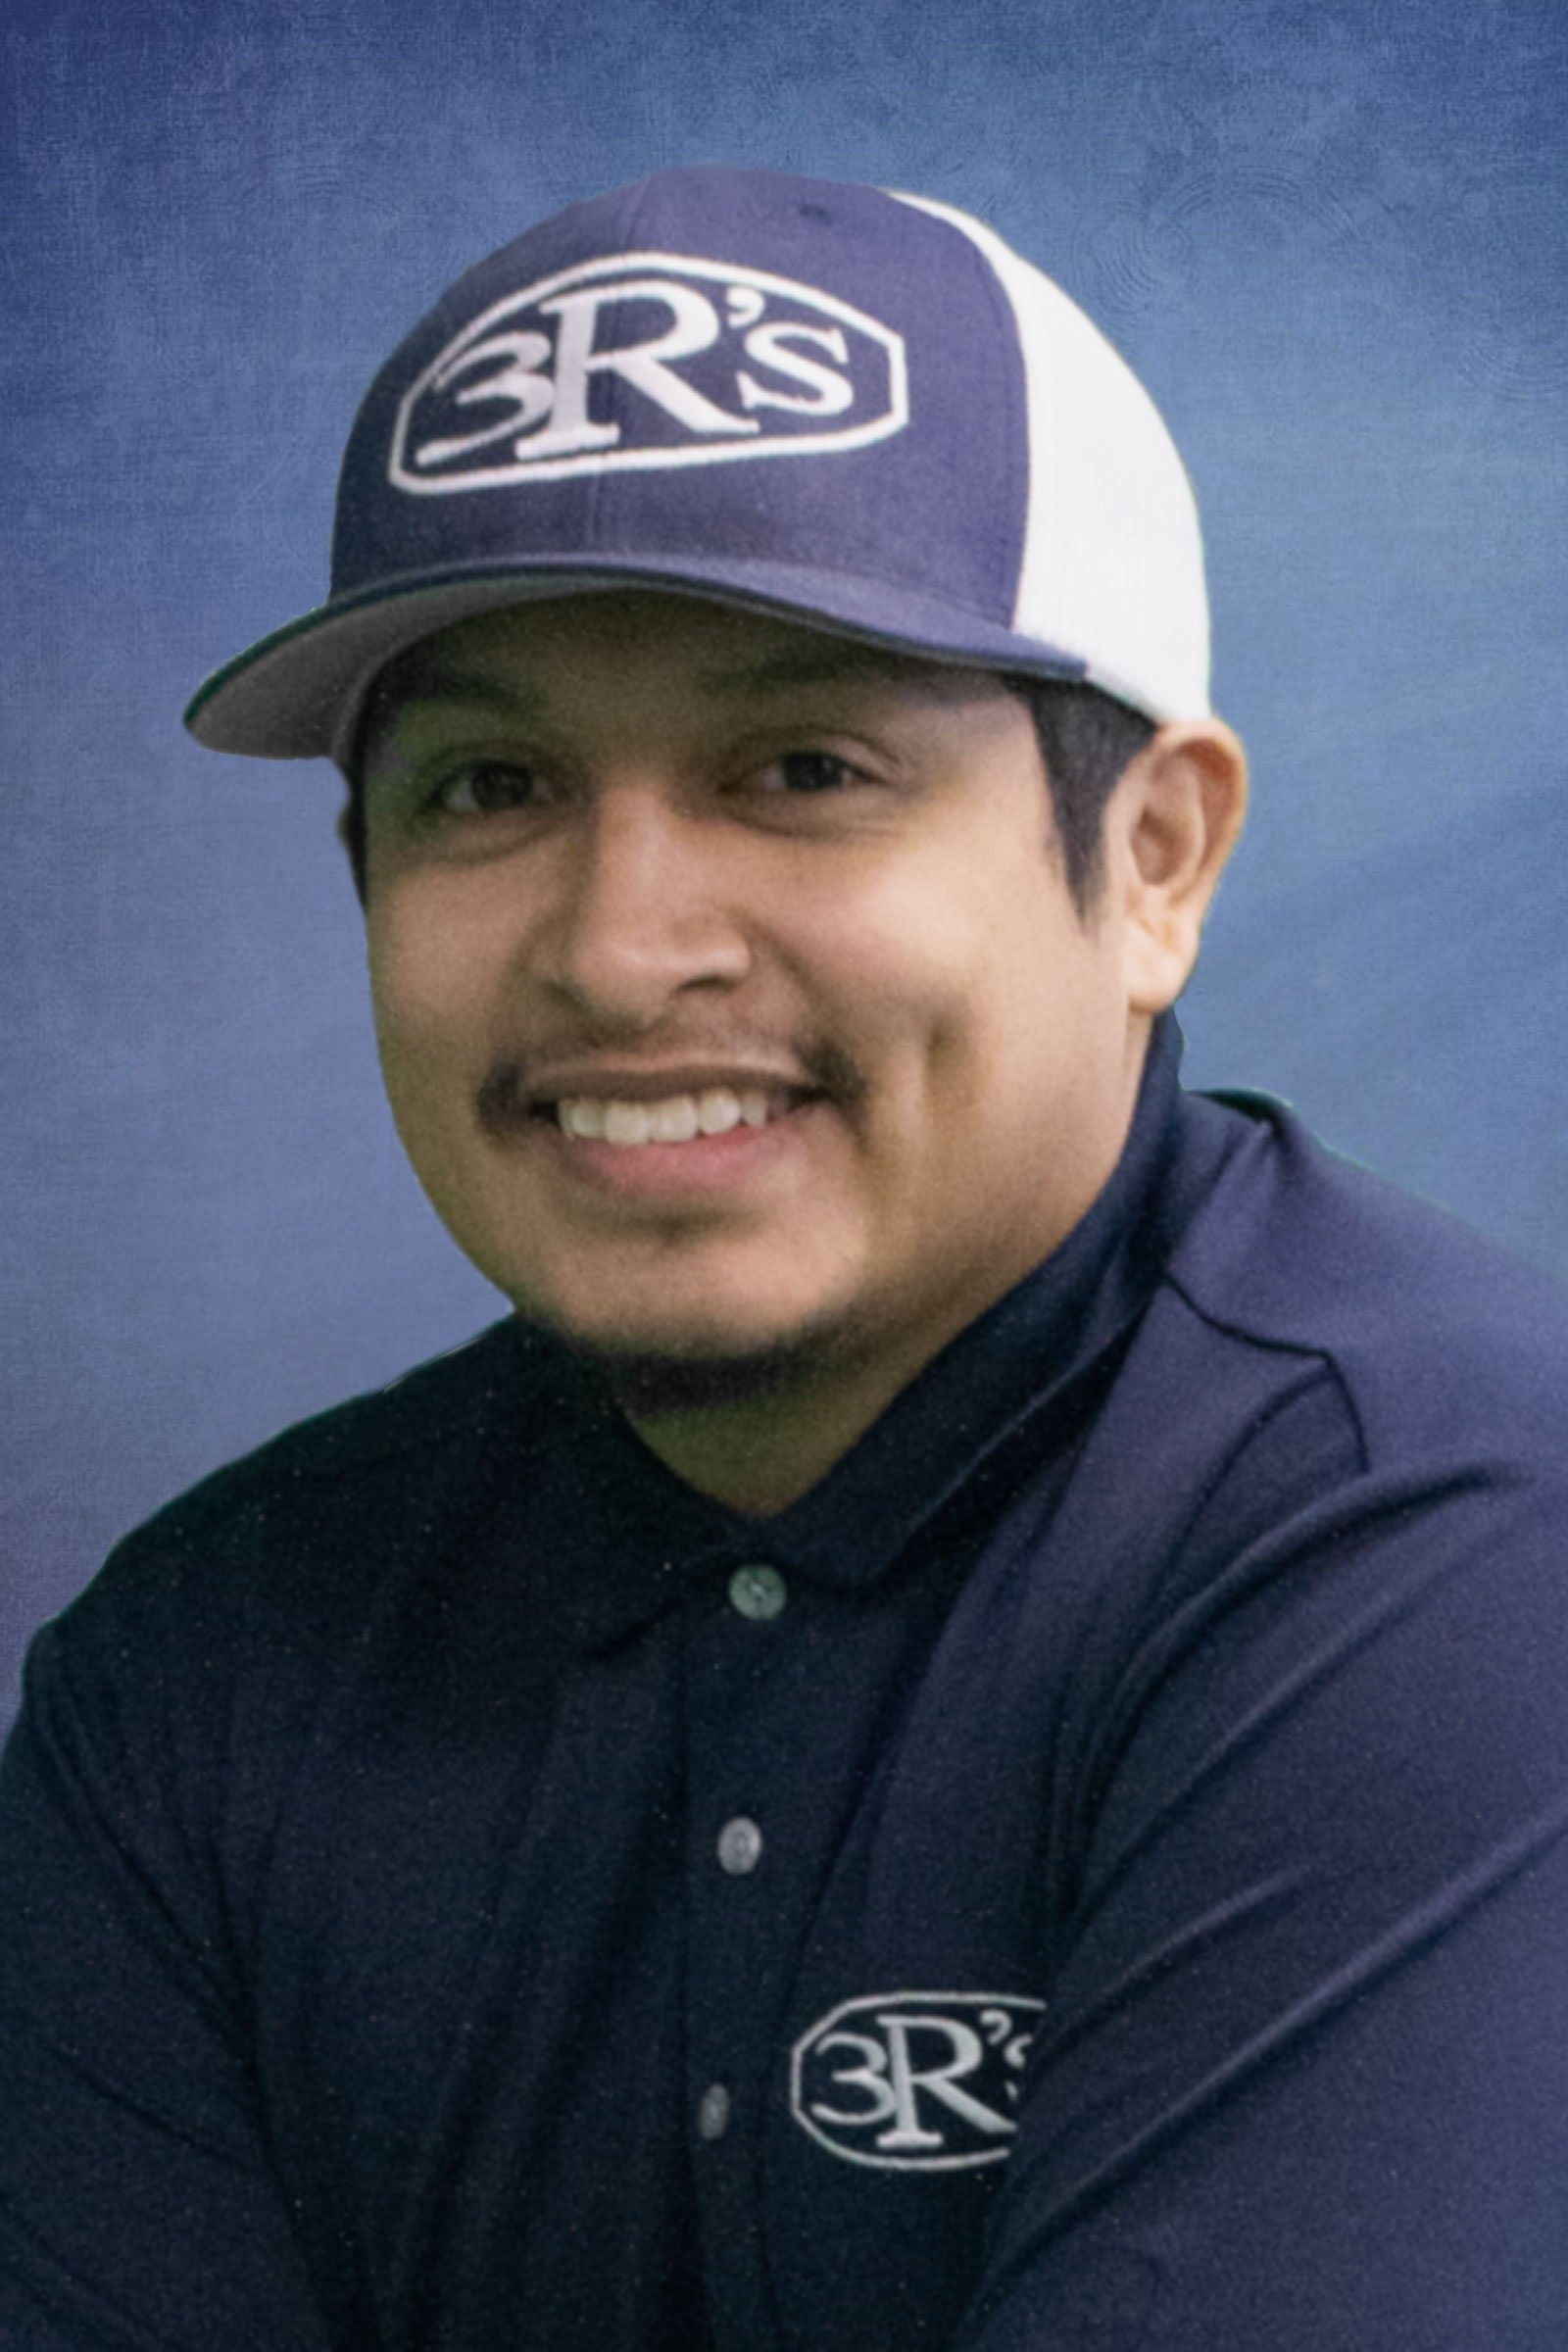 Efrain Field Tech for 3Rs Construction